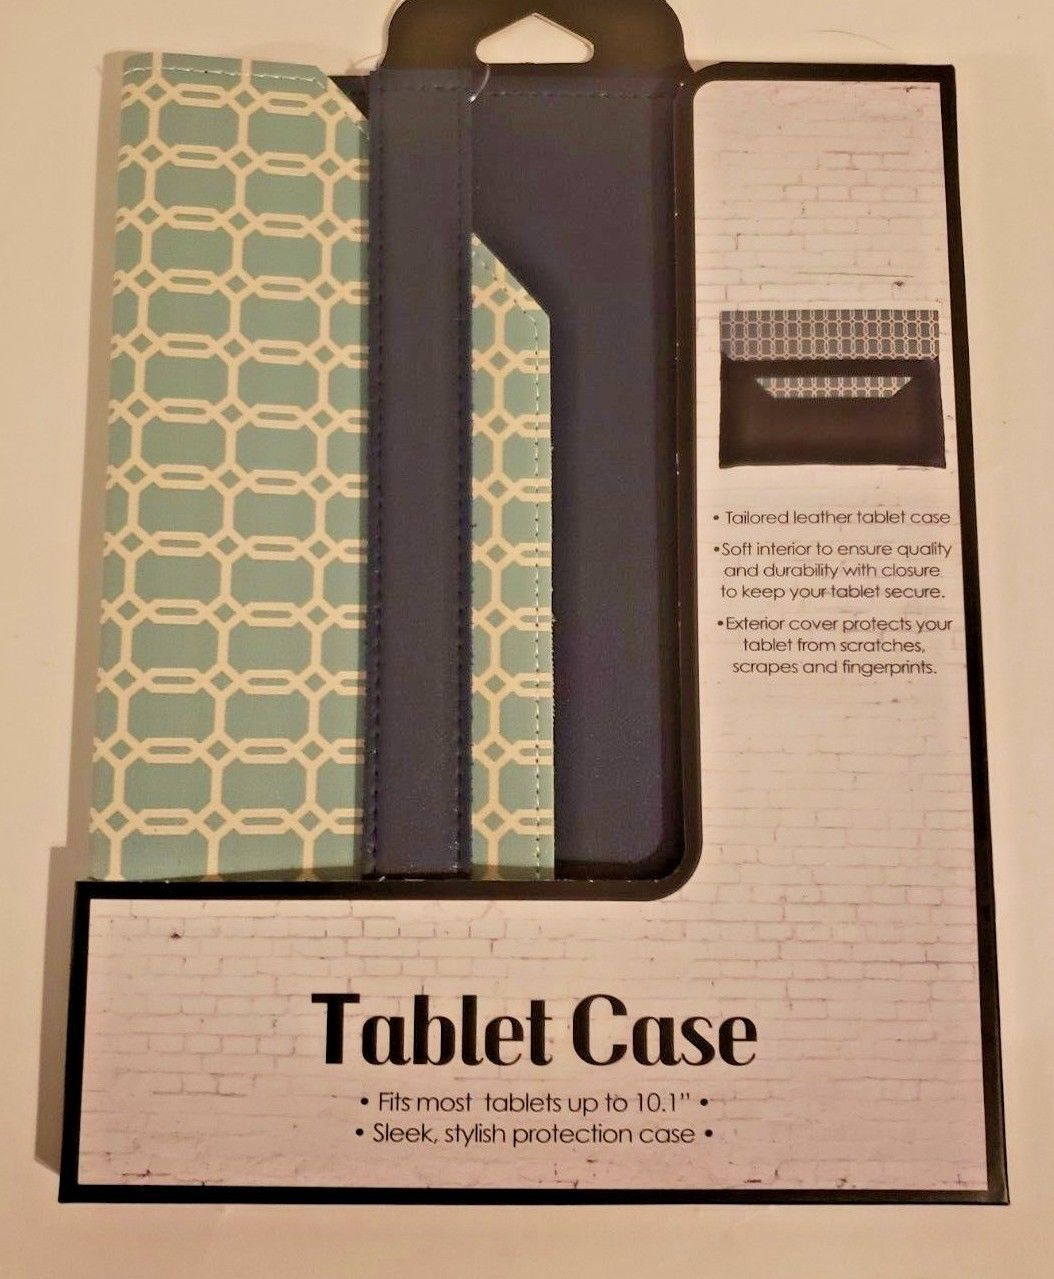 """Tailored Leather Tablet Case Fits Up To 10.1"""" (Teal and Dark Blue)"""